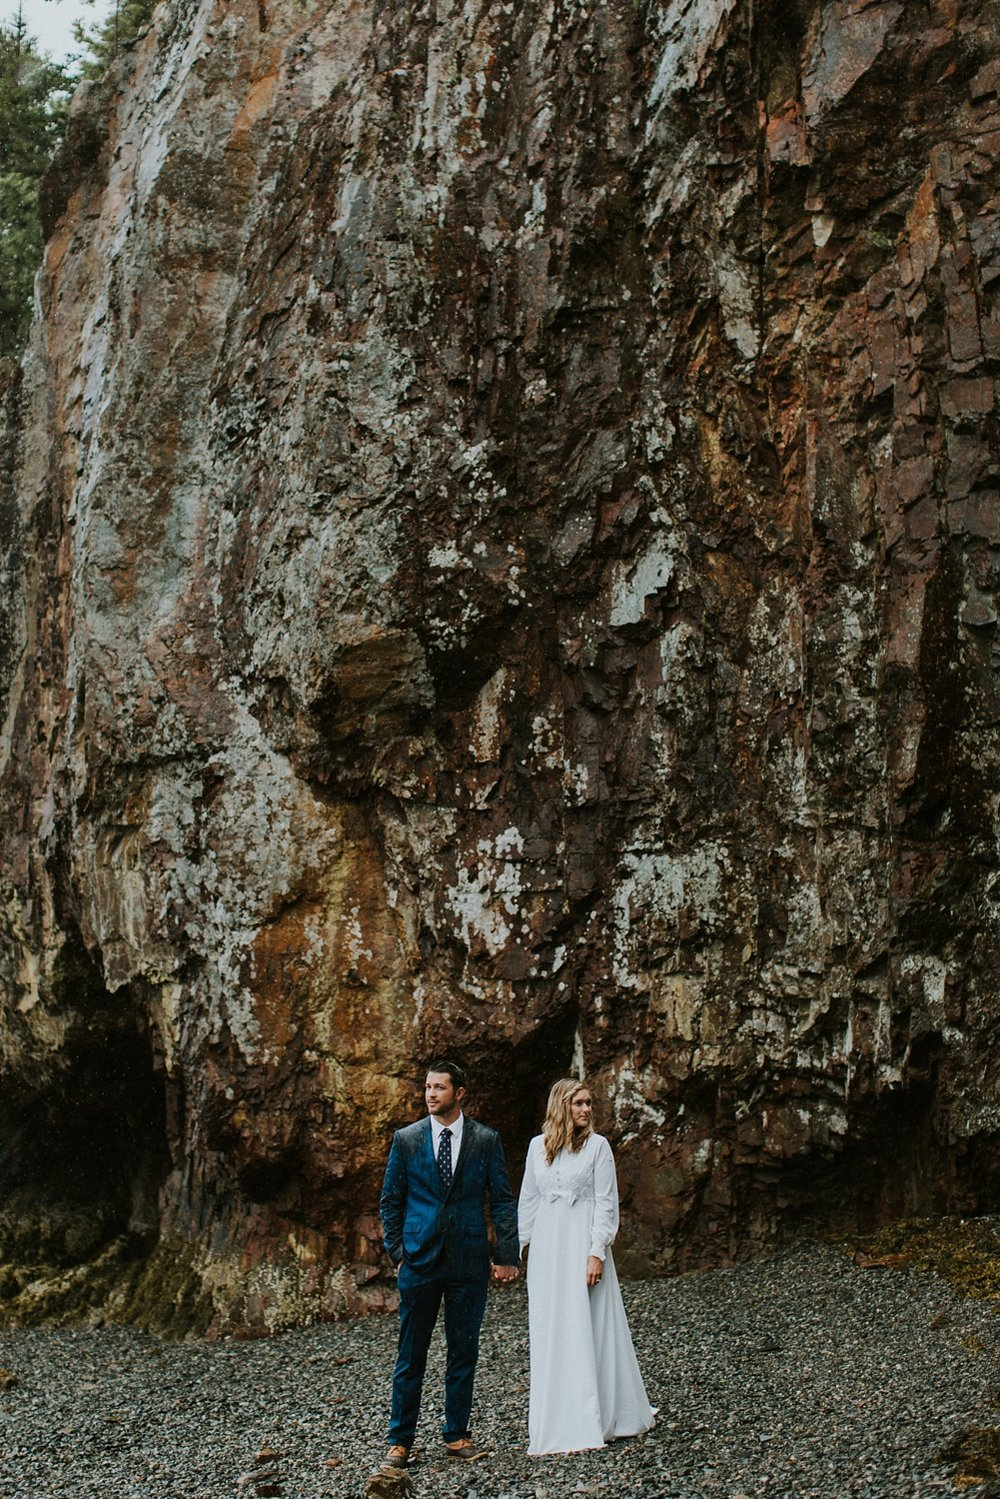 Maine and Destination Wedding Photographer | Jamie Mercurio_0061.jpg